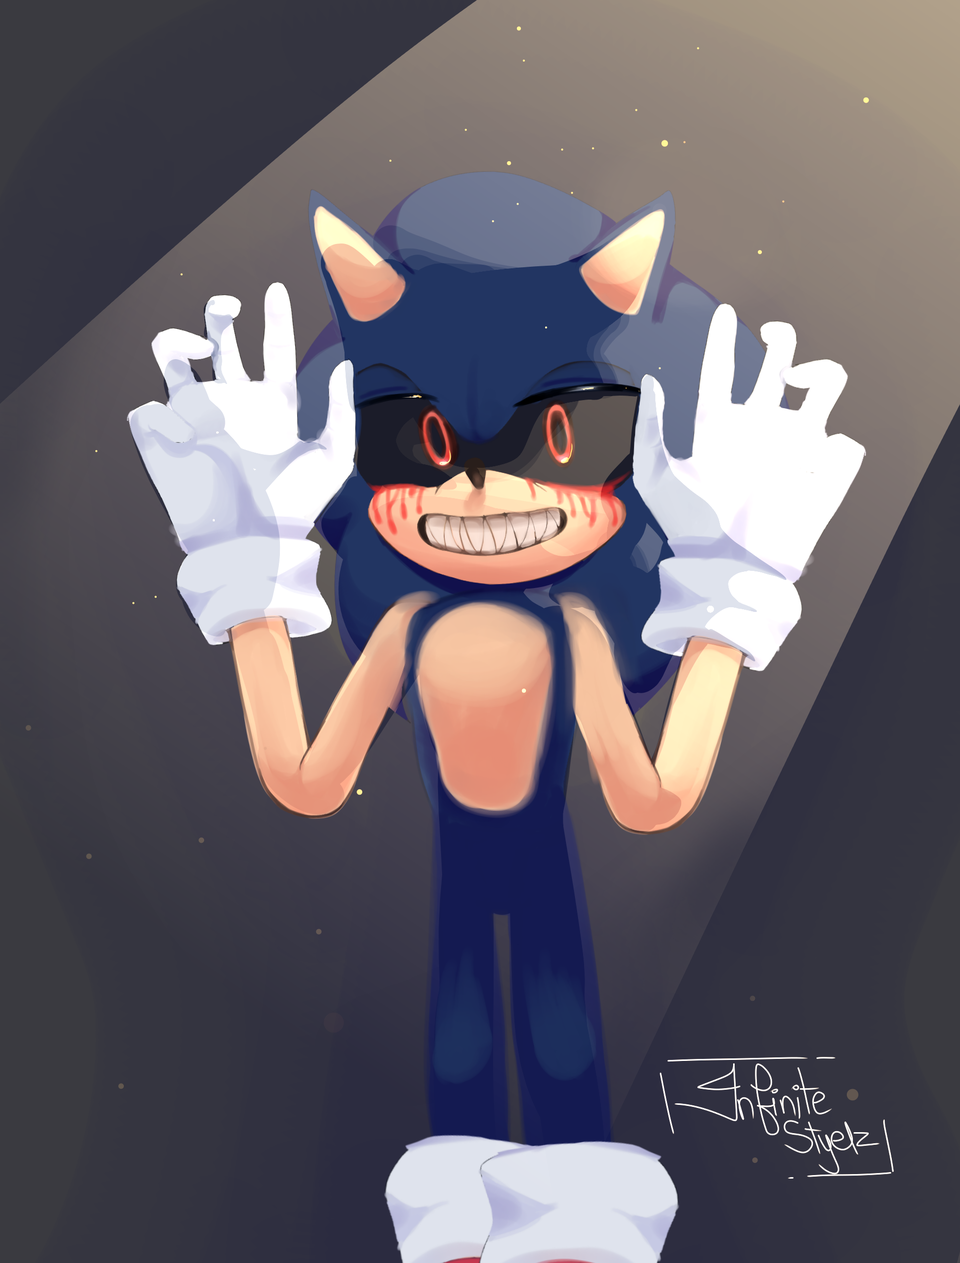 if you make this the most liked thing on medi... Illust of Infinite stylez medibangpaint sonicexe wtfisthattag.. smexy Sonic darkbaby infinitestylez